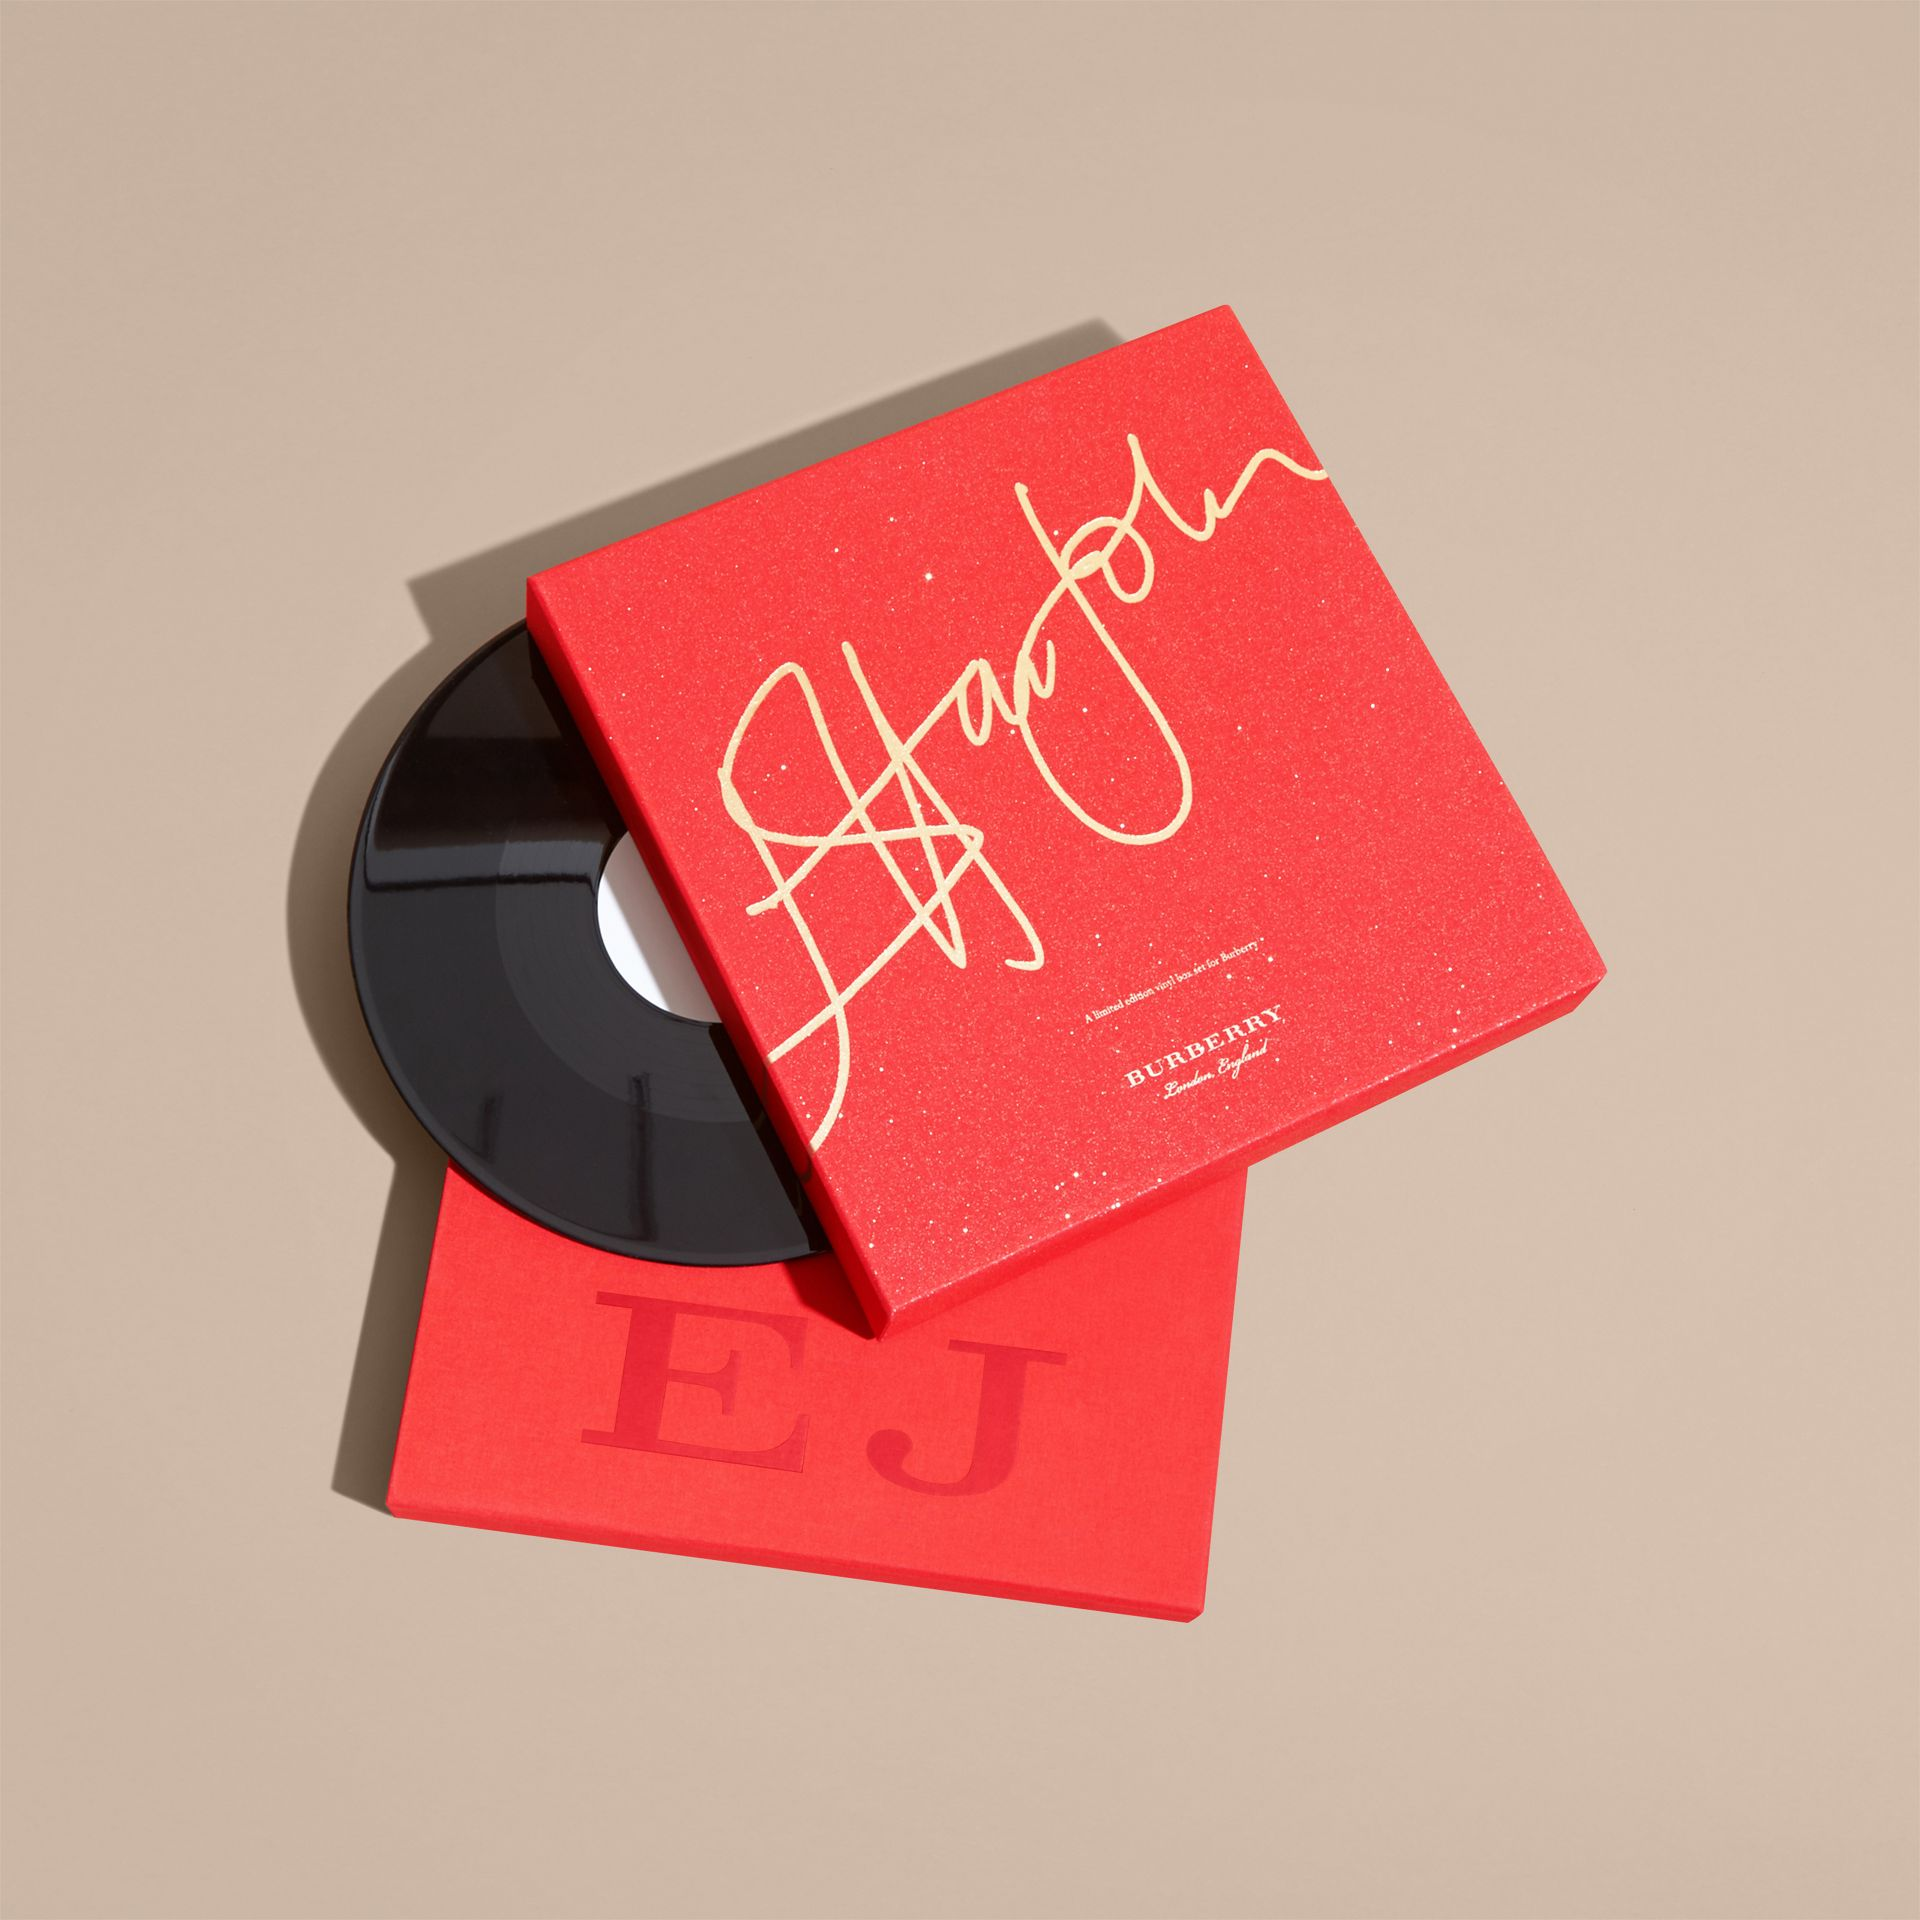 Multicolour Elton John: A Limited Edition Vinyl Box Set for Burberry - gallery image 9